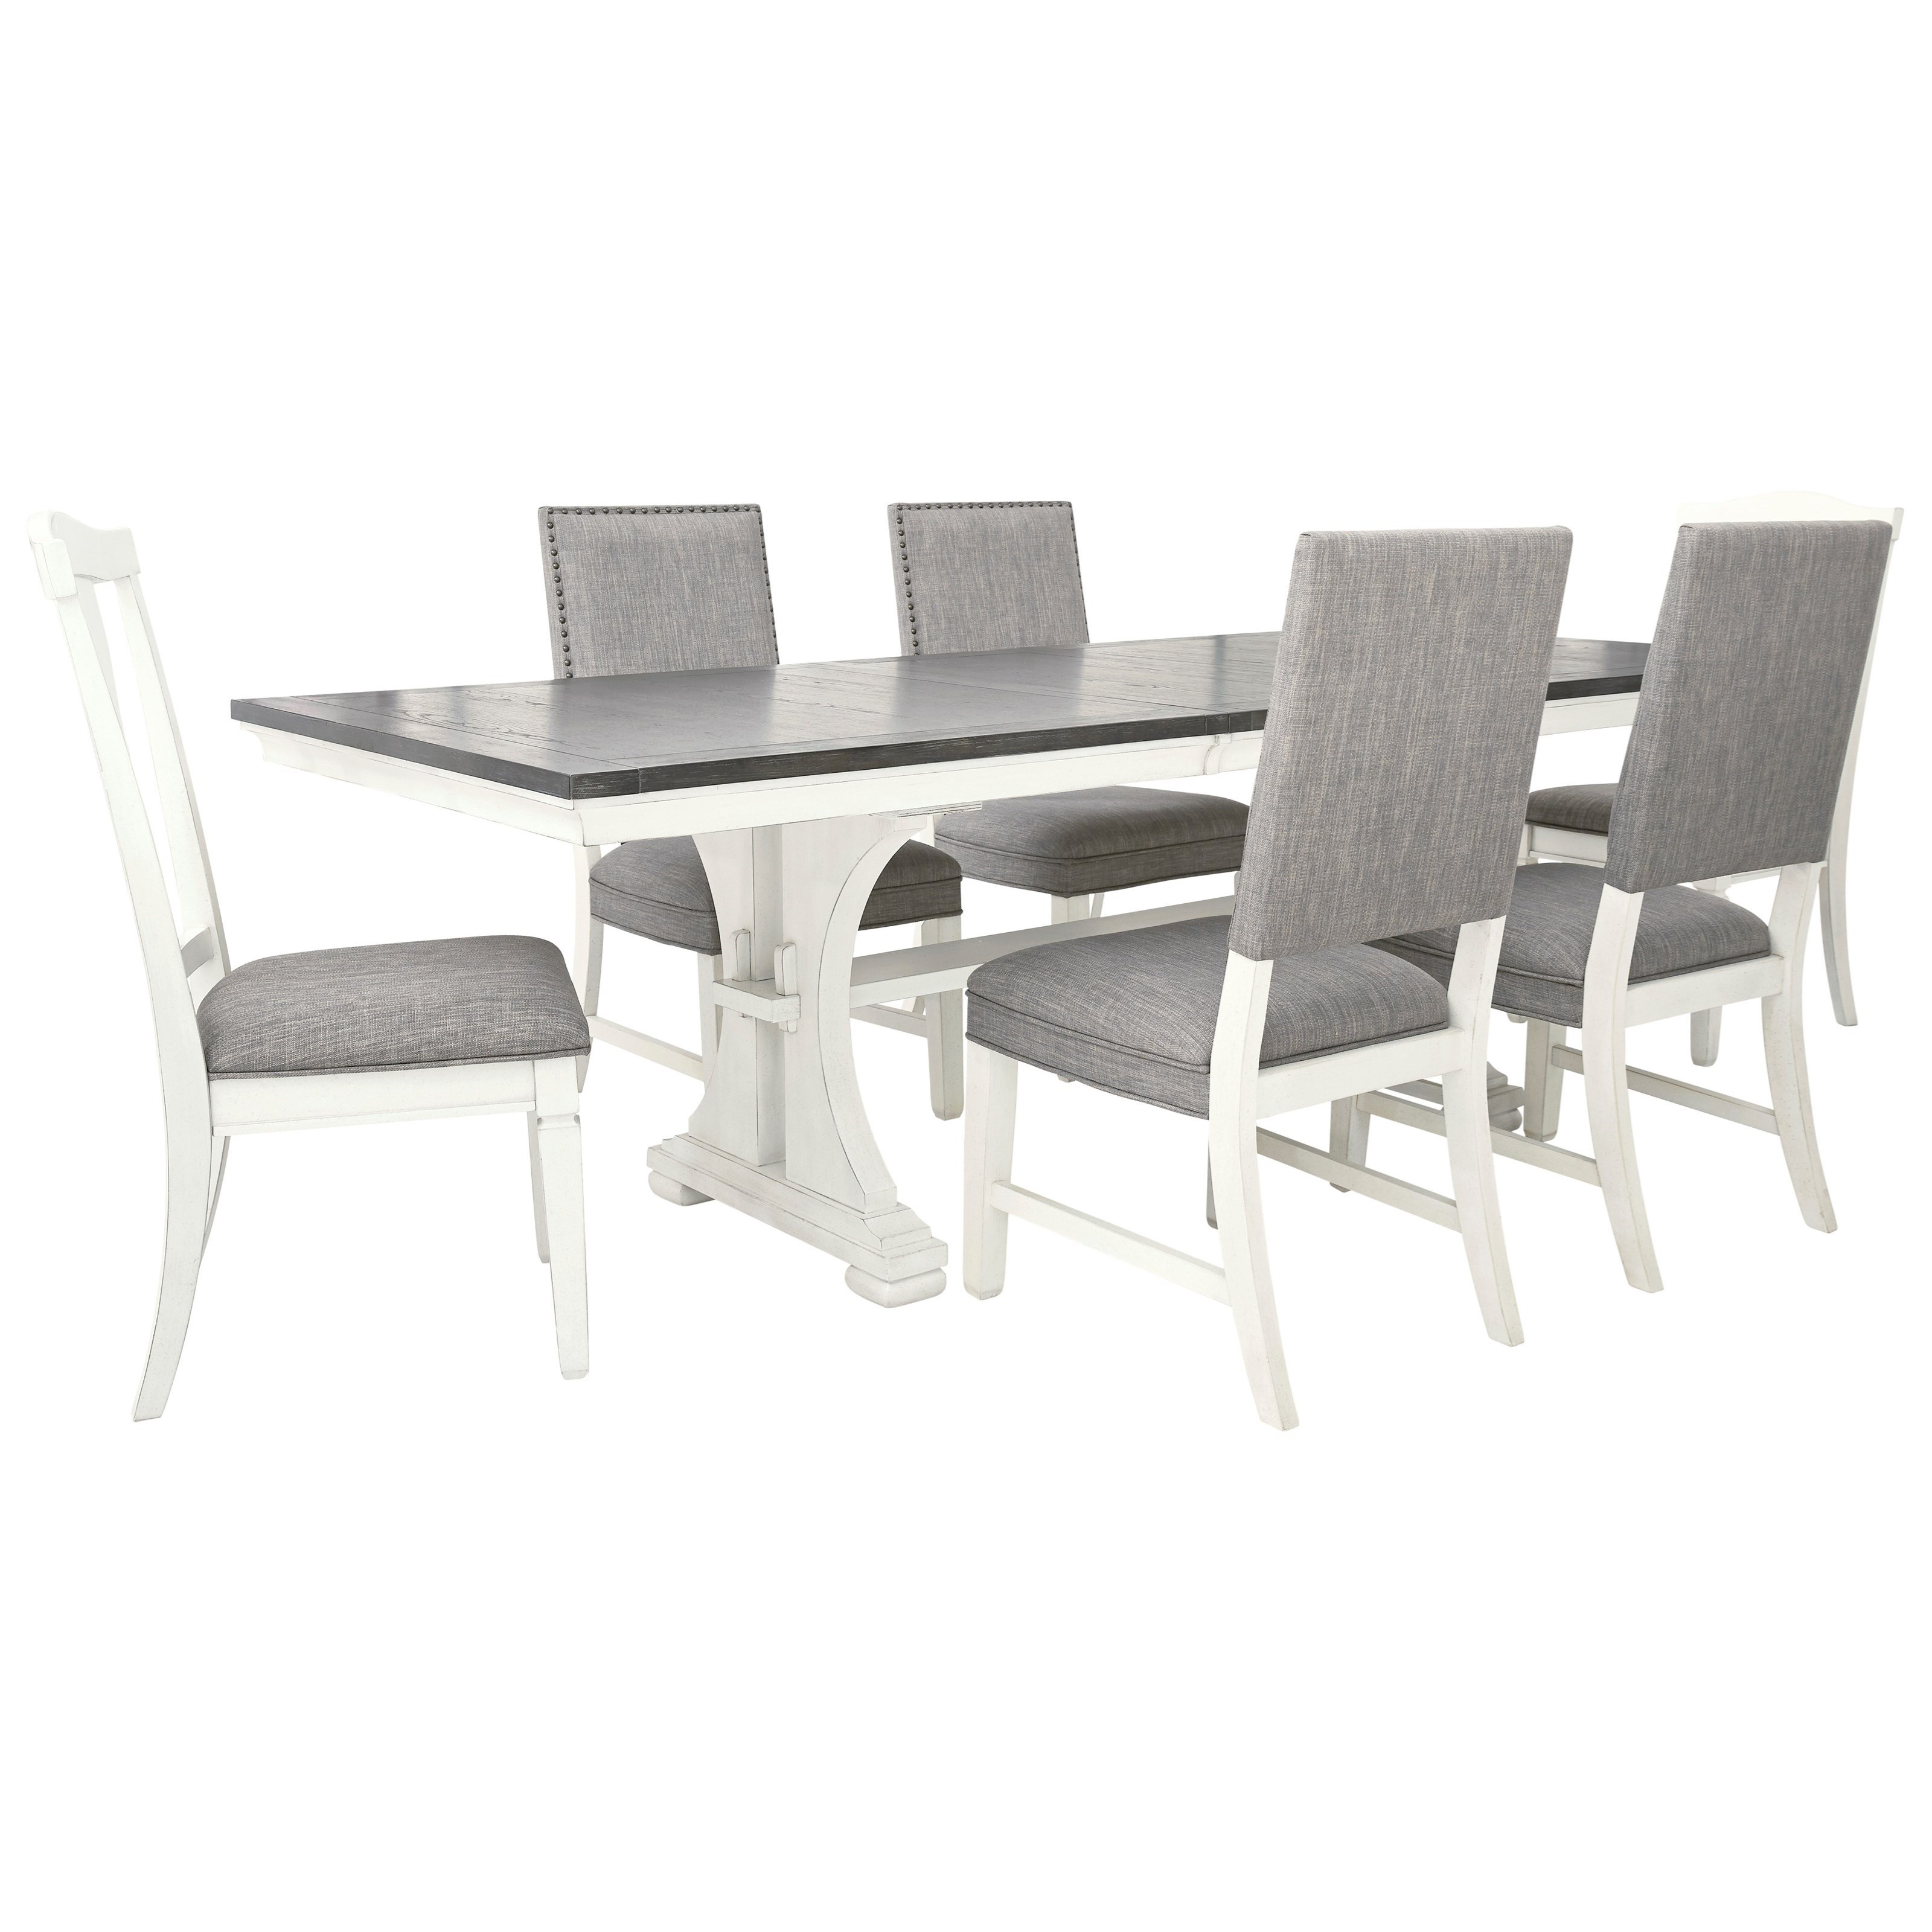 Nashbryn Dining Set by Benchcraft at Value City Furniture